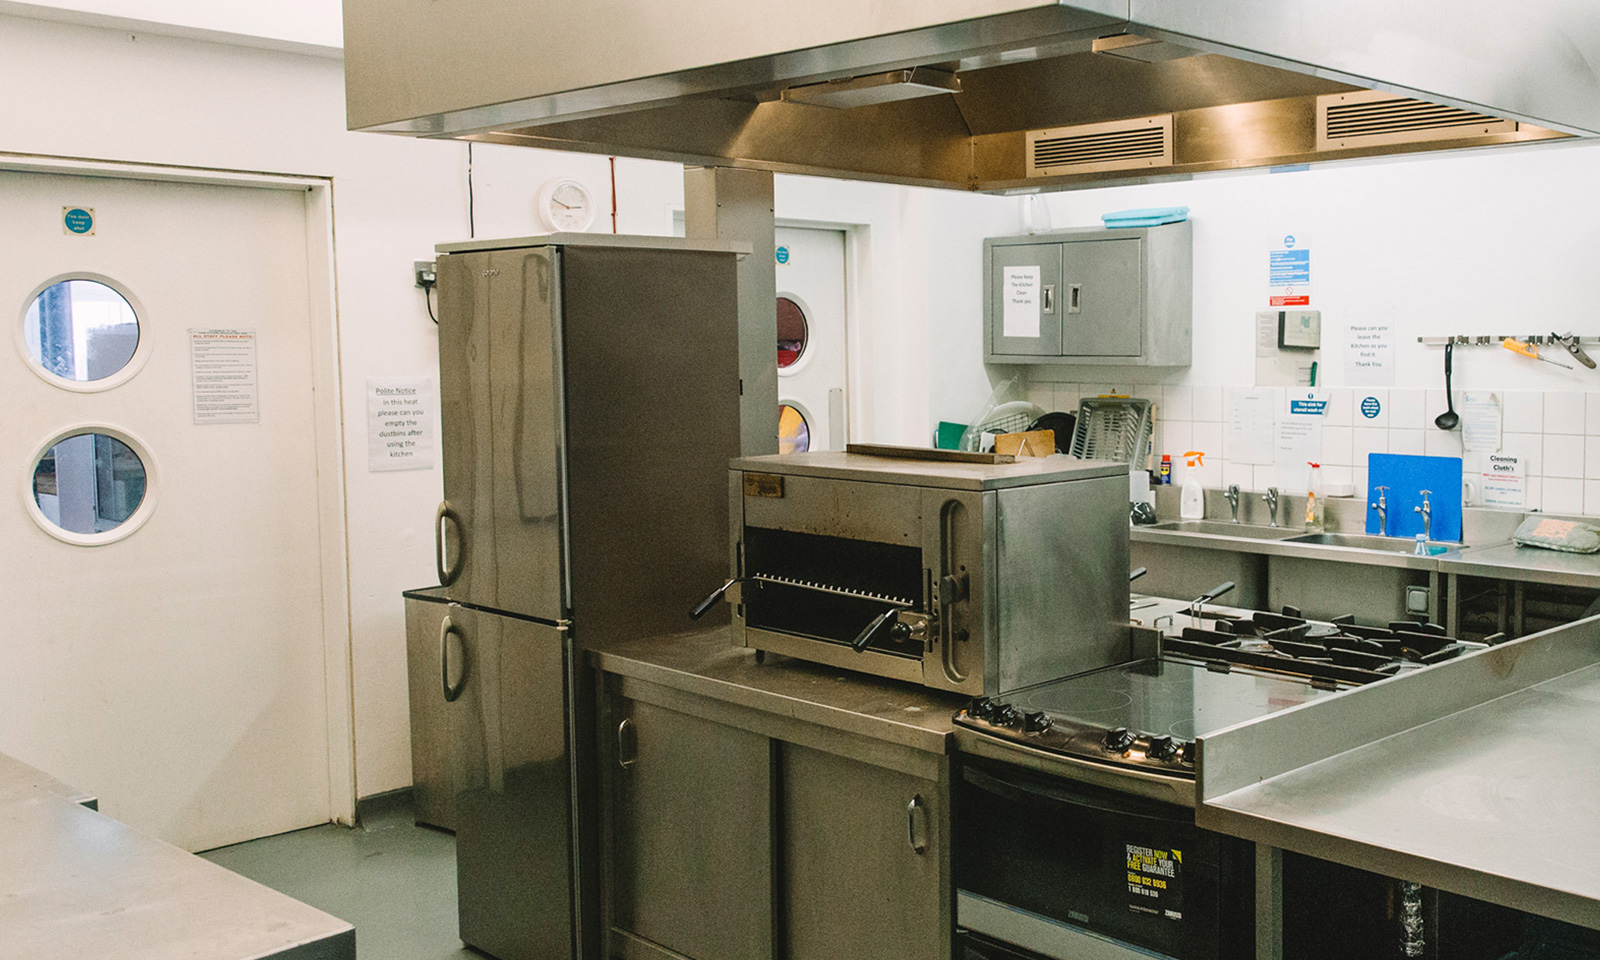 The Kitchen - You can hire our large kitchen to hold a cookery class, prepare meals for your events yourself or even invite in your favourite local caterers.